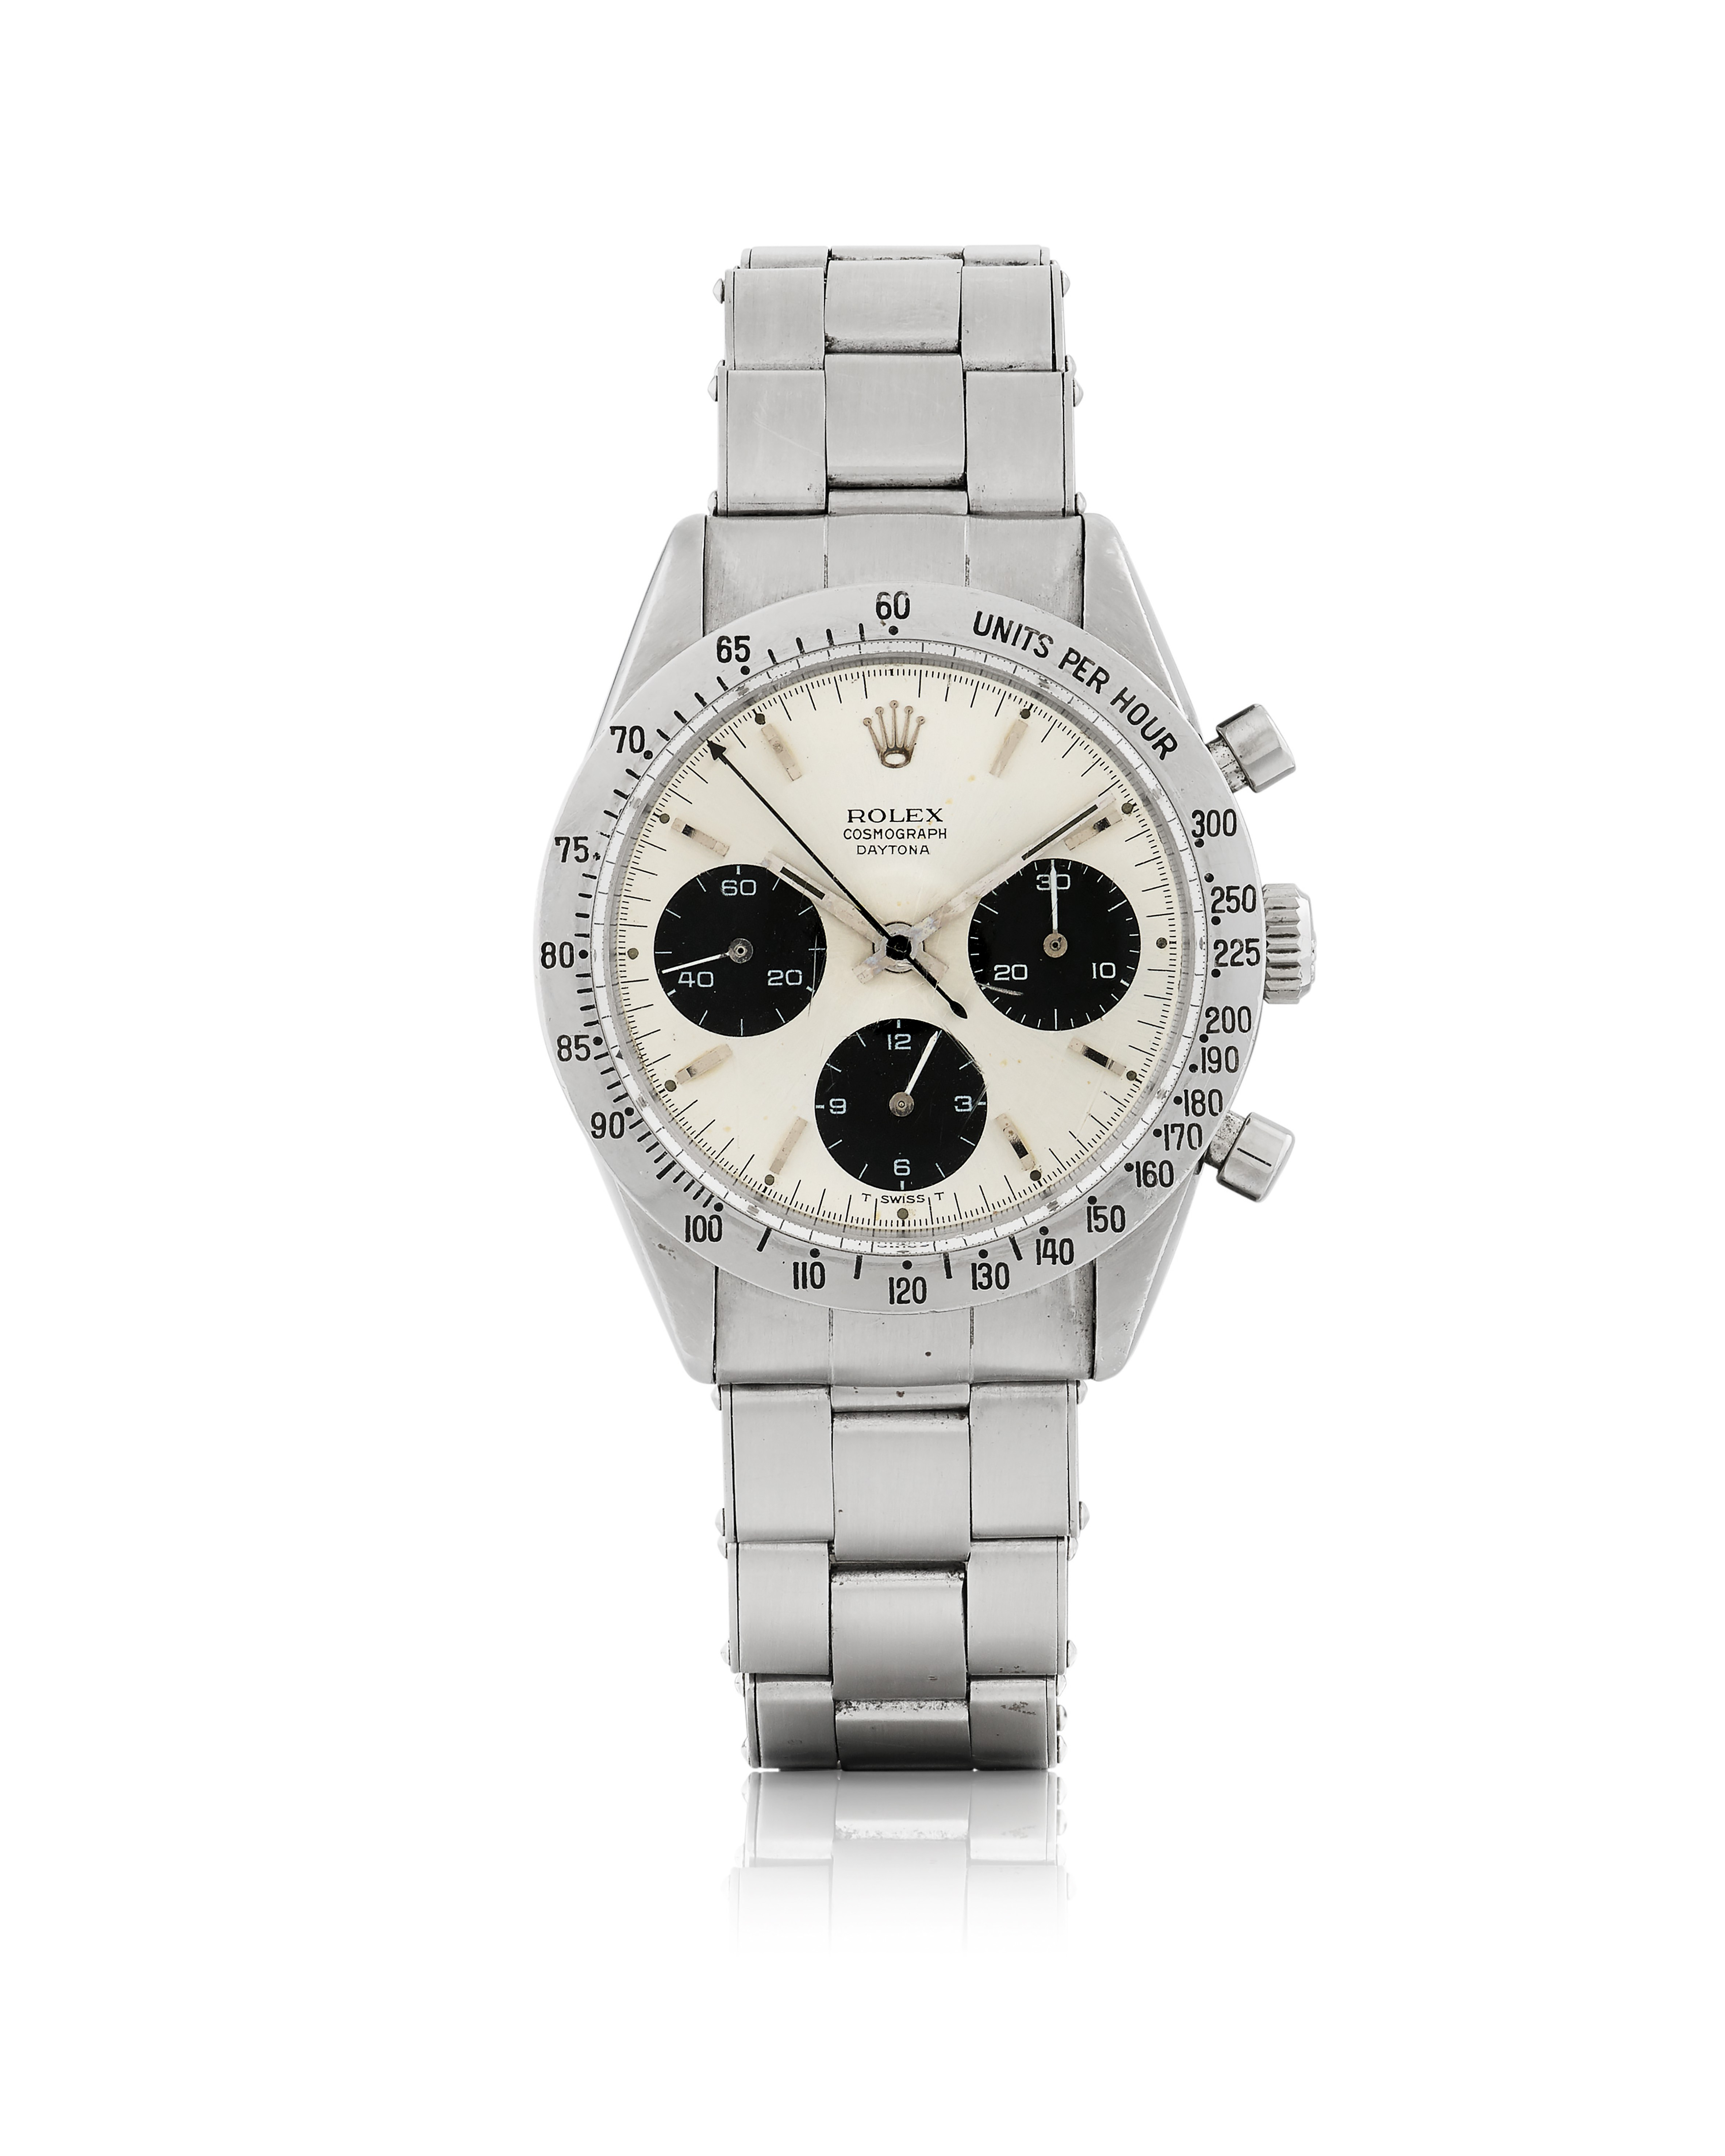 View full screen - View 1 of Lot 5. ROLEX | 'SMALL' DAYTONA, REF 6239 STAINLESS STEEL CHRONOGRAPH WRISTWATCH WITH BRACELET  CIRCA 1966.